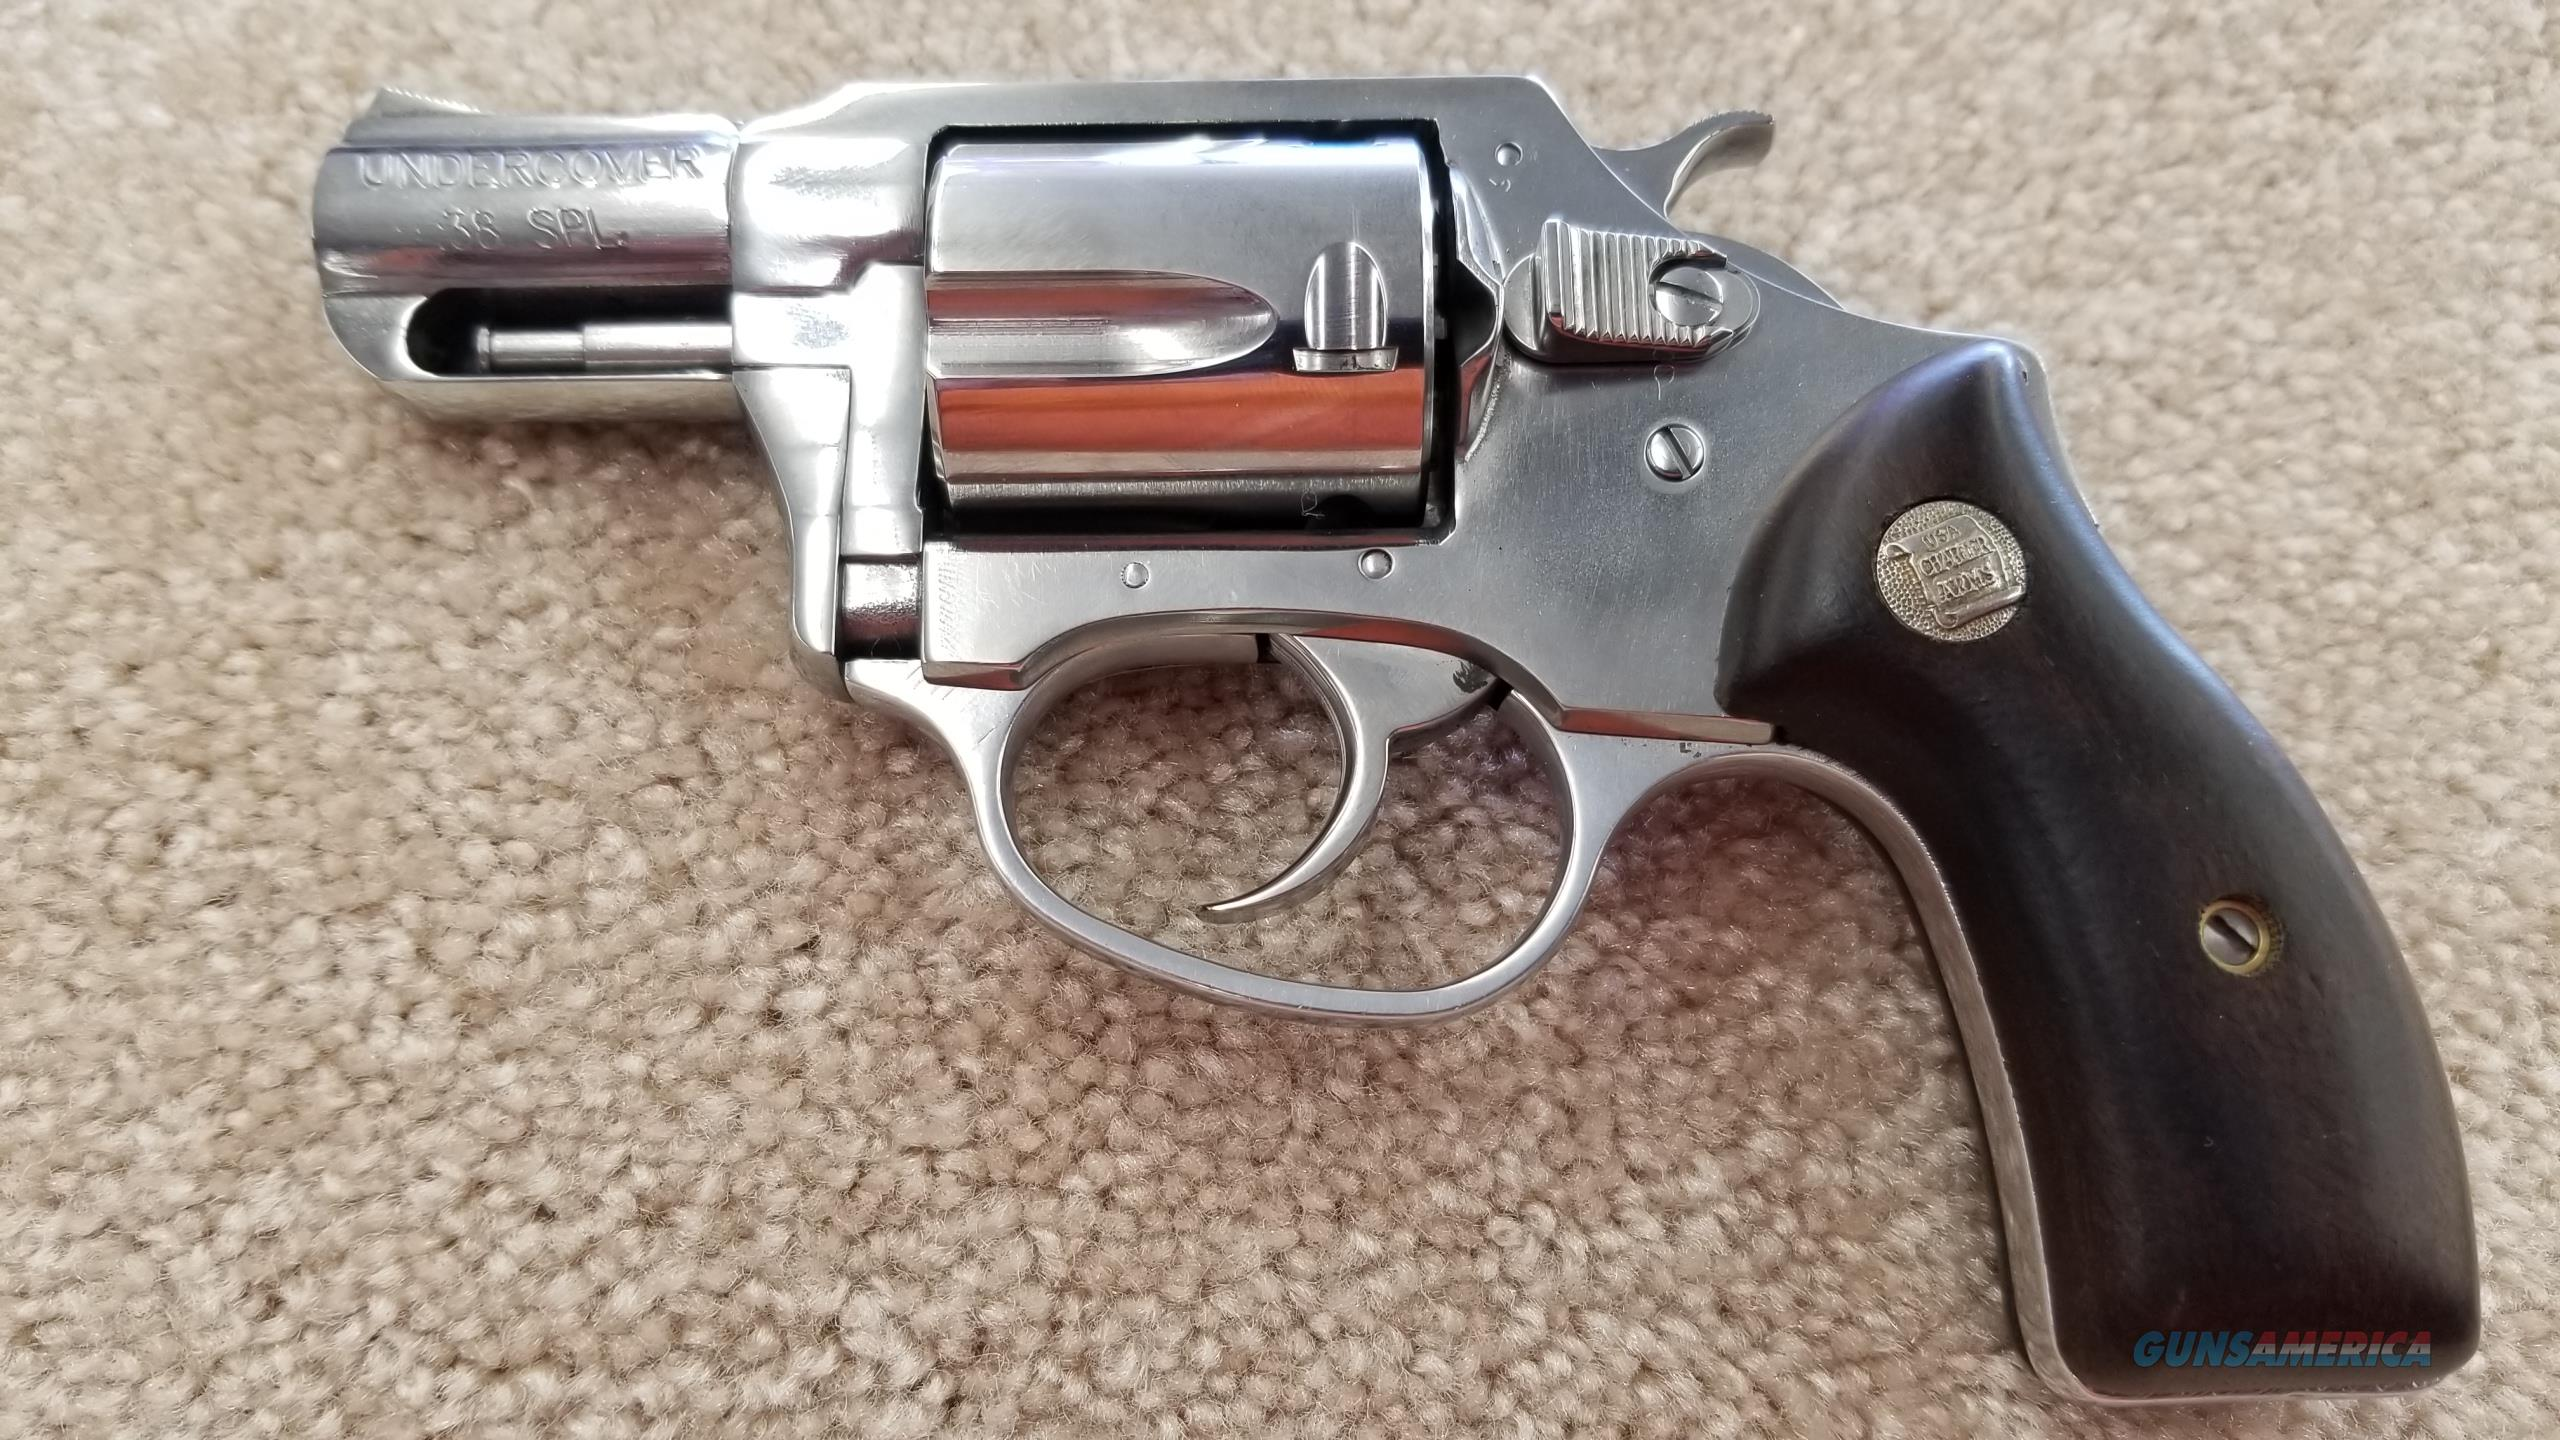 Charter Arms Undercover High Polished w/ Wooden Grips  Guns > Pistols > Charter Arms Revolvers